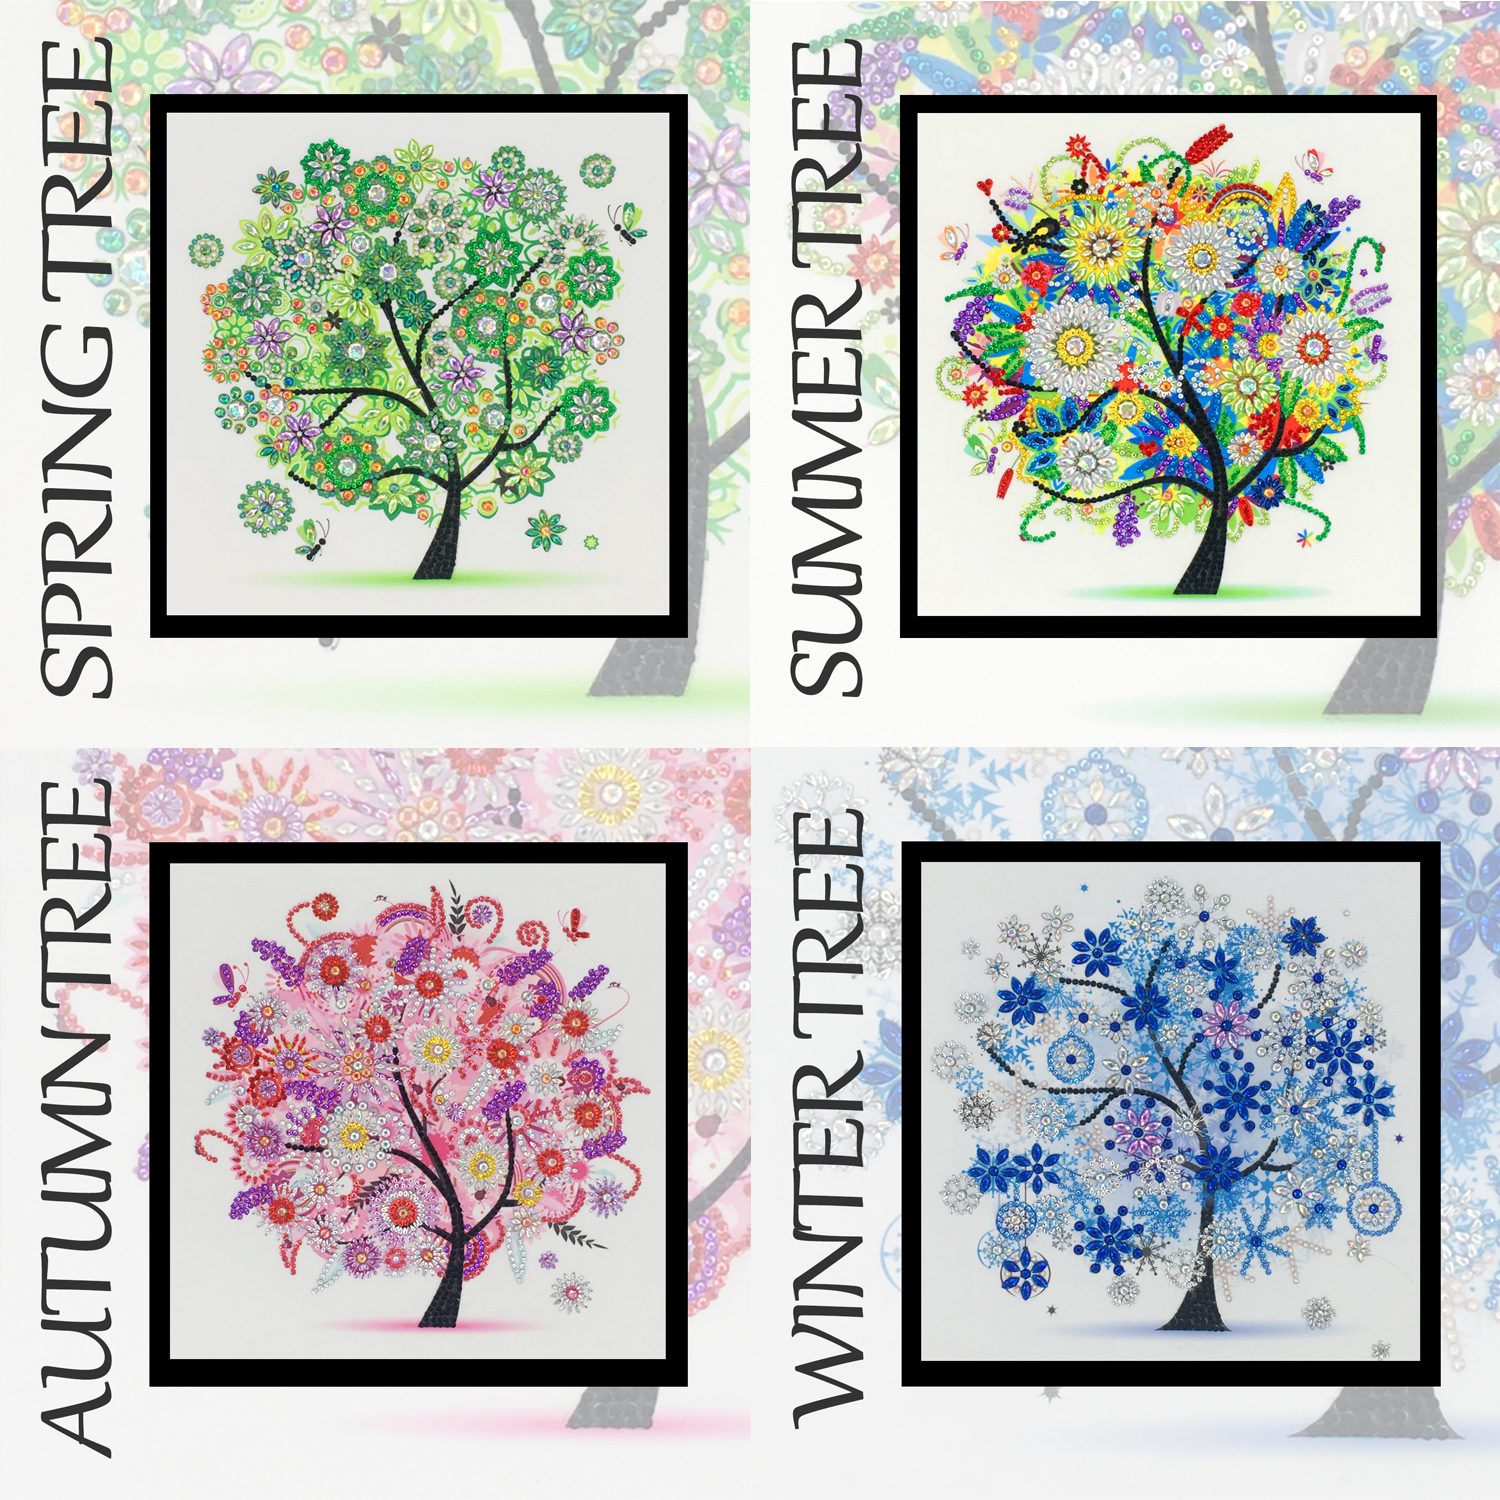 Four Seasons Tree Special Shaped 5D DIY Diamond Painting embroidery Rhinestone Partial Drill Cross Stitch Kits Crystal  Hot Sale